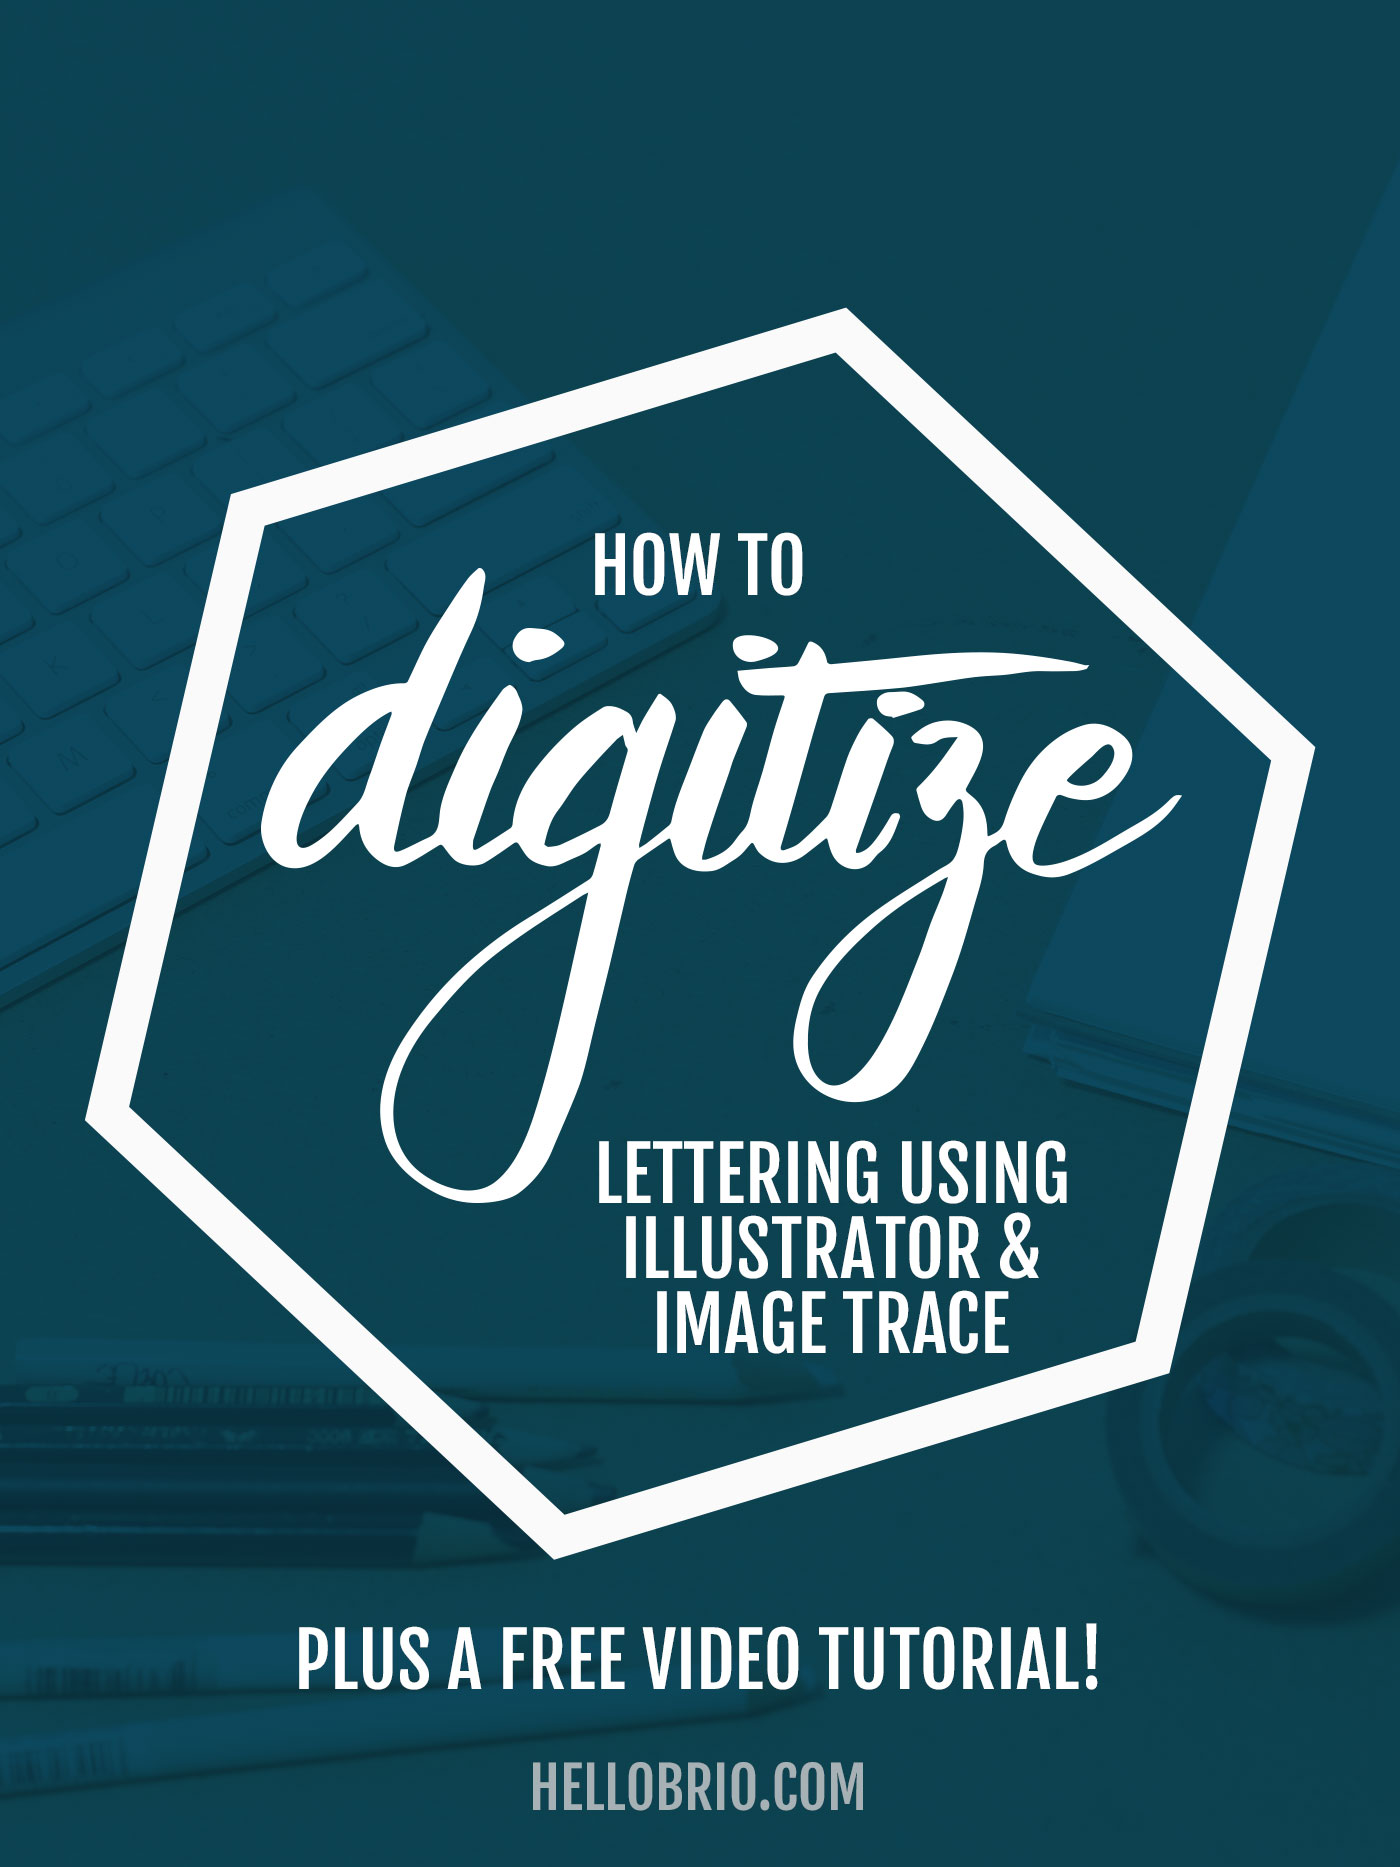 Learn how to digitize your hand lettering and calligraphy using Illustrator and Image Trace - plus watch the free 6-minute video tutorial